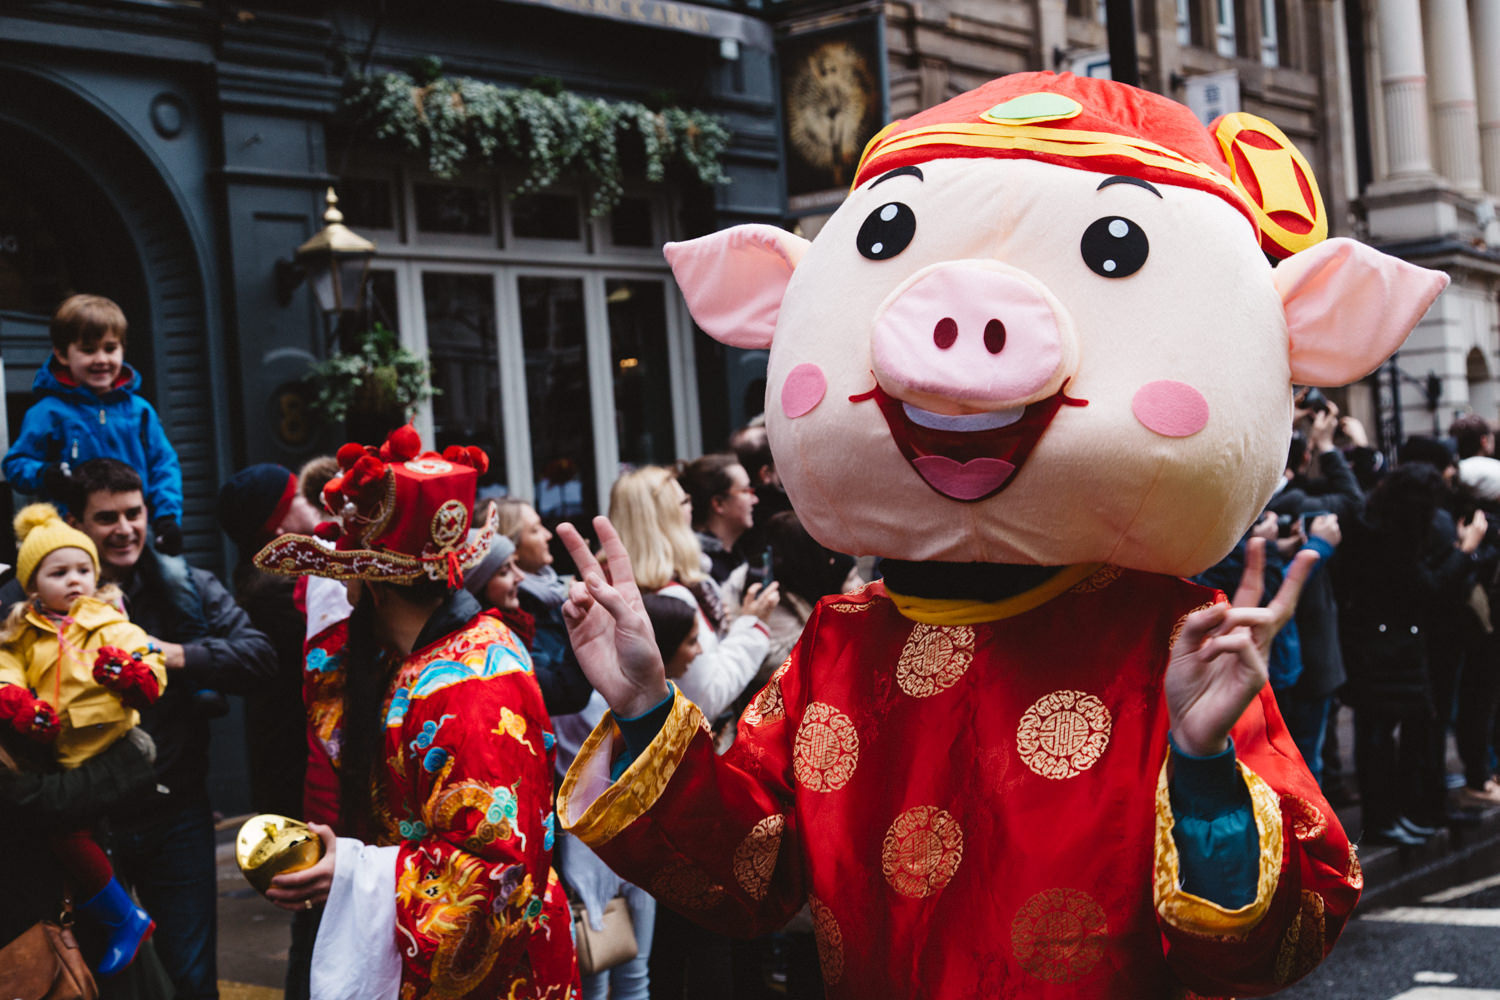 Person dressed as a Pig for the Chinese New Year Parade in London